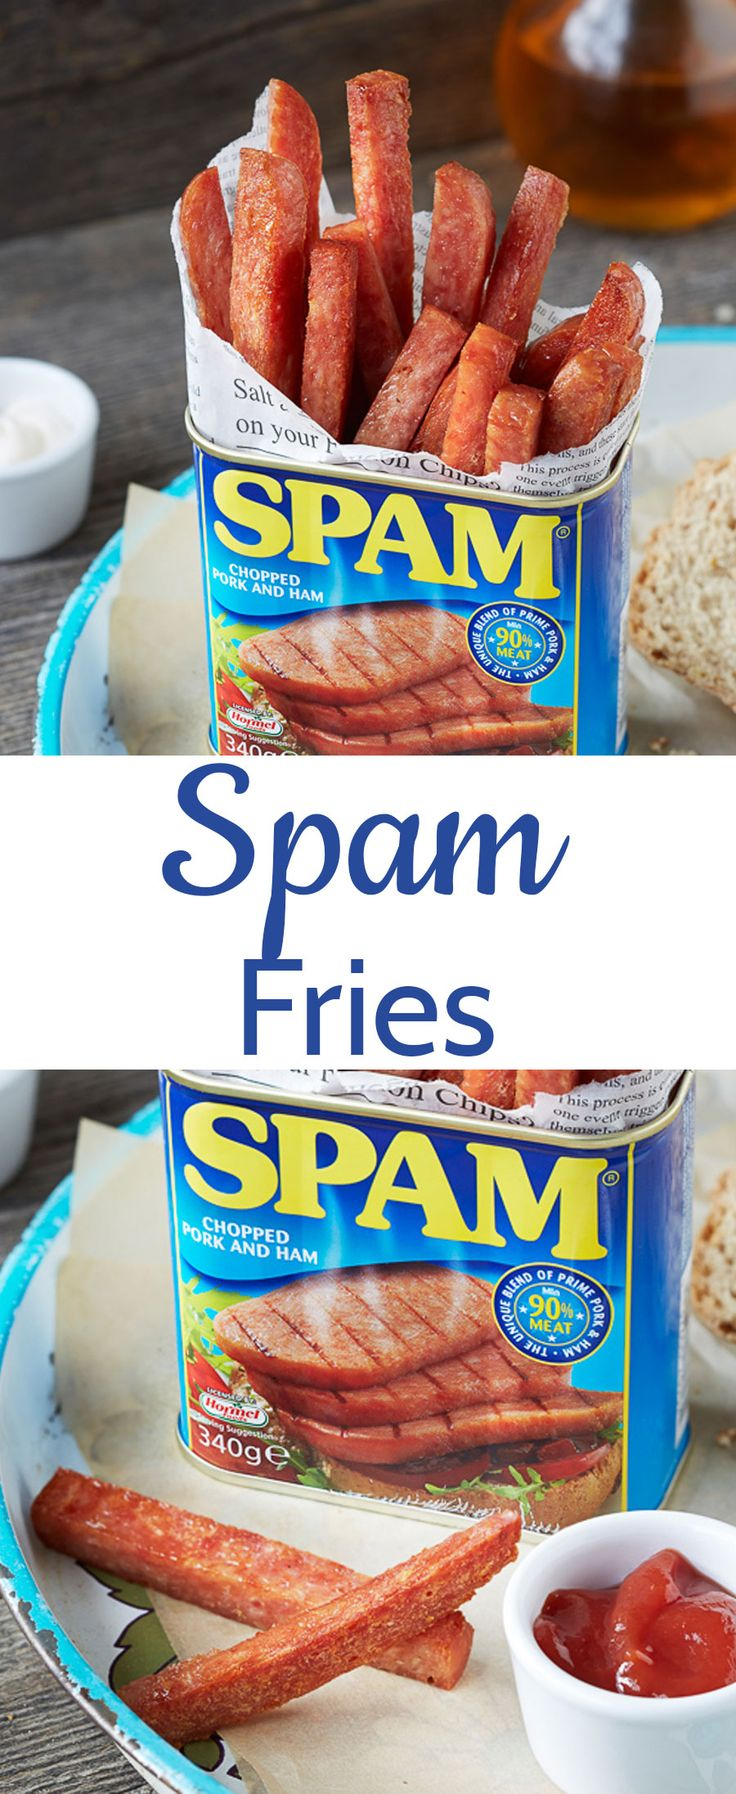 SPAM fries - an easy one ingredient breakfast